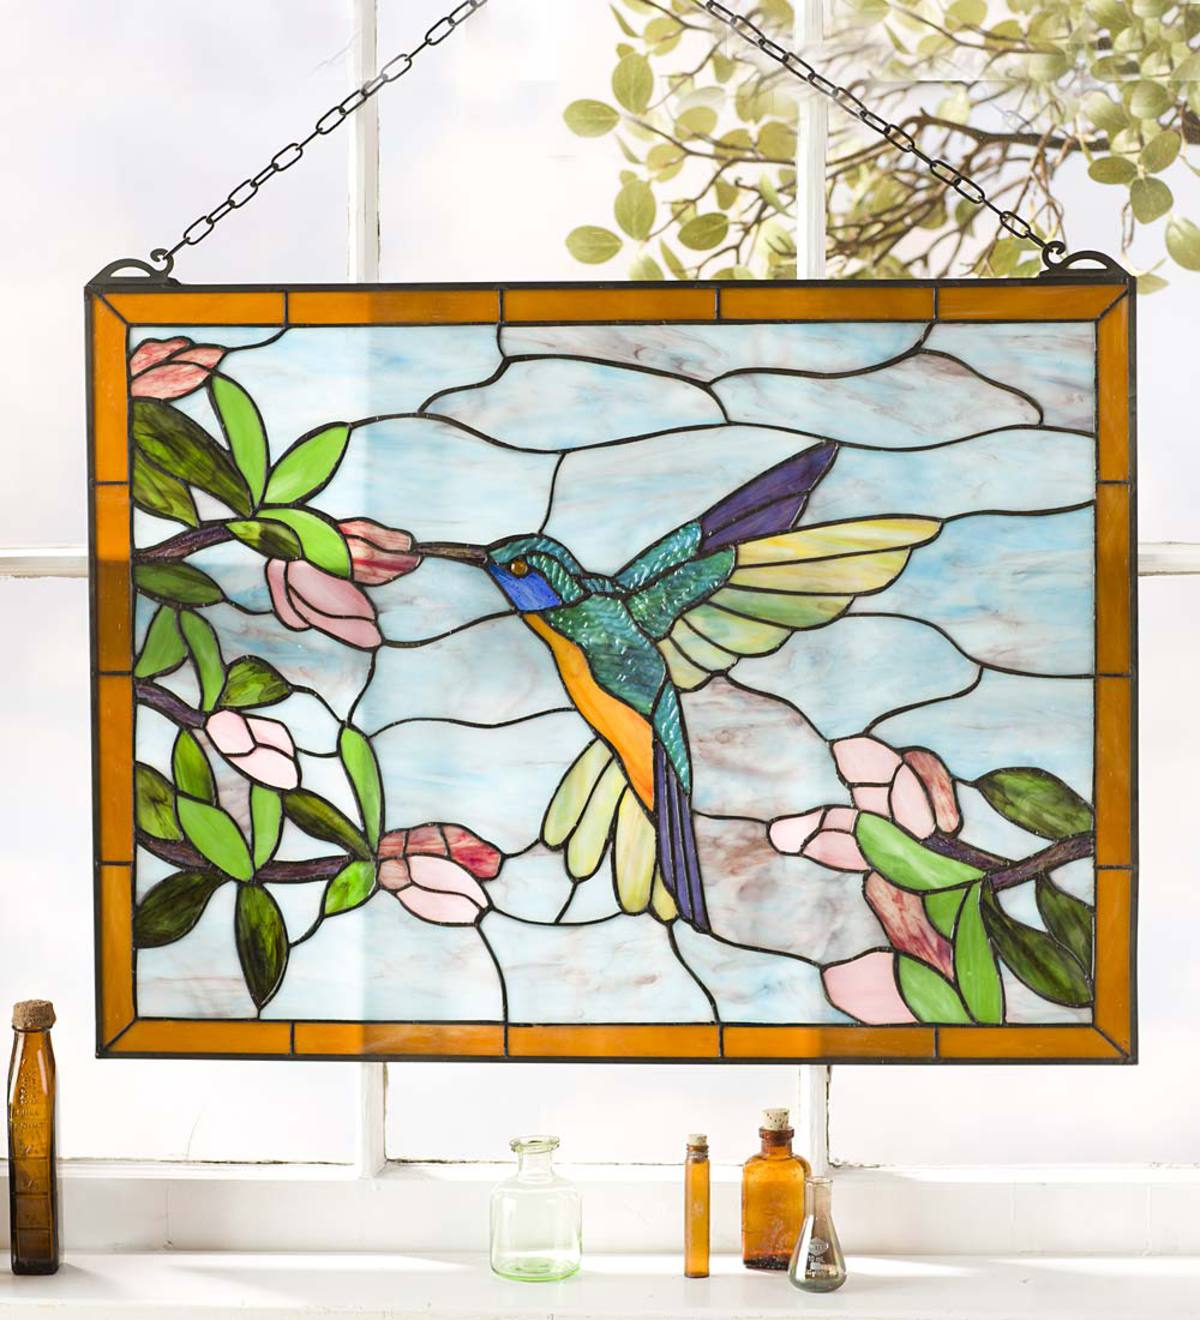 Stained Glass Hummingbird Art Panel with Metal Frame and Chain